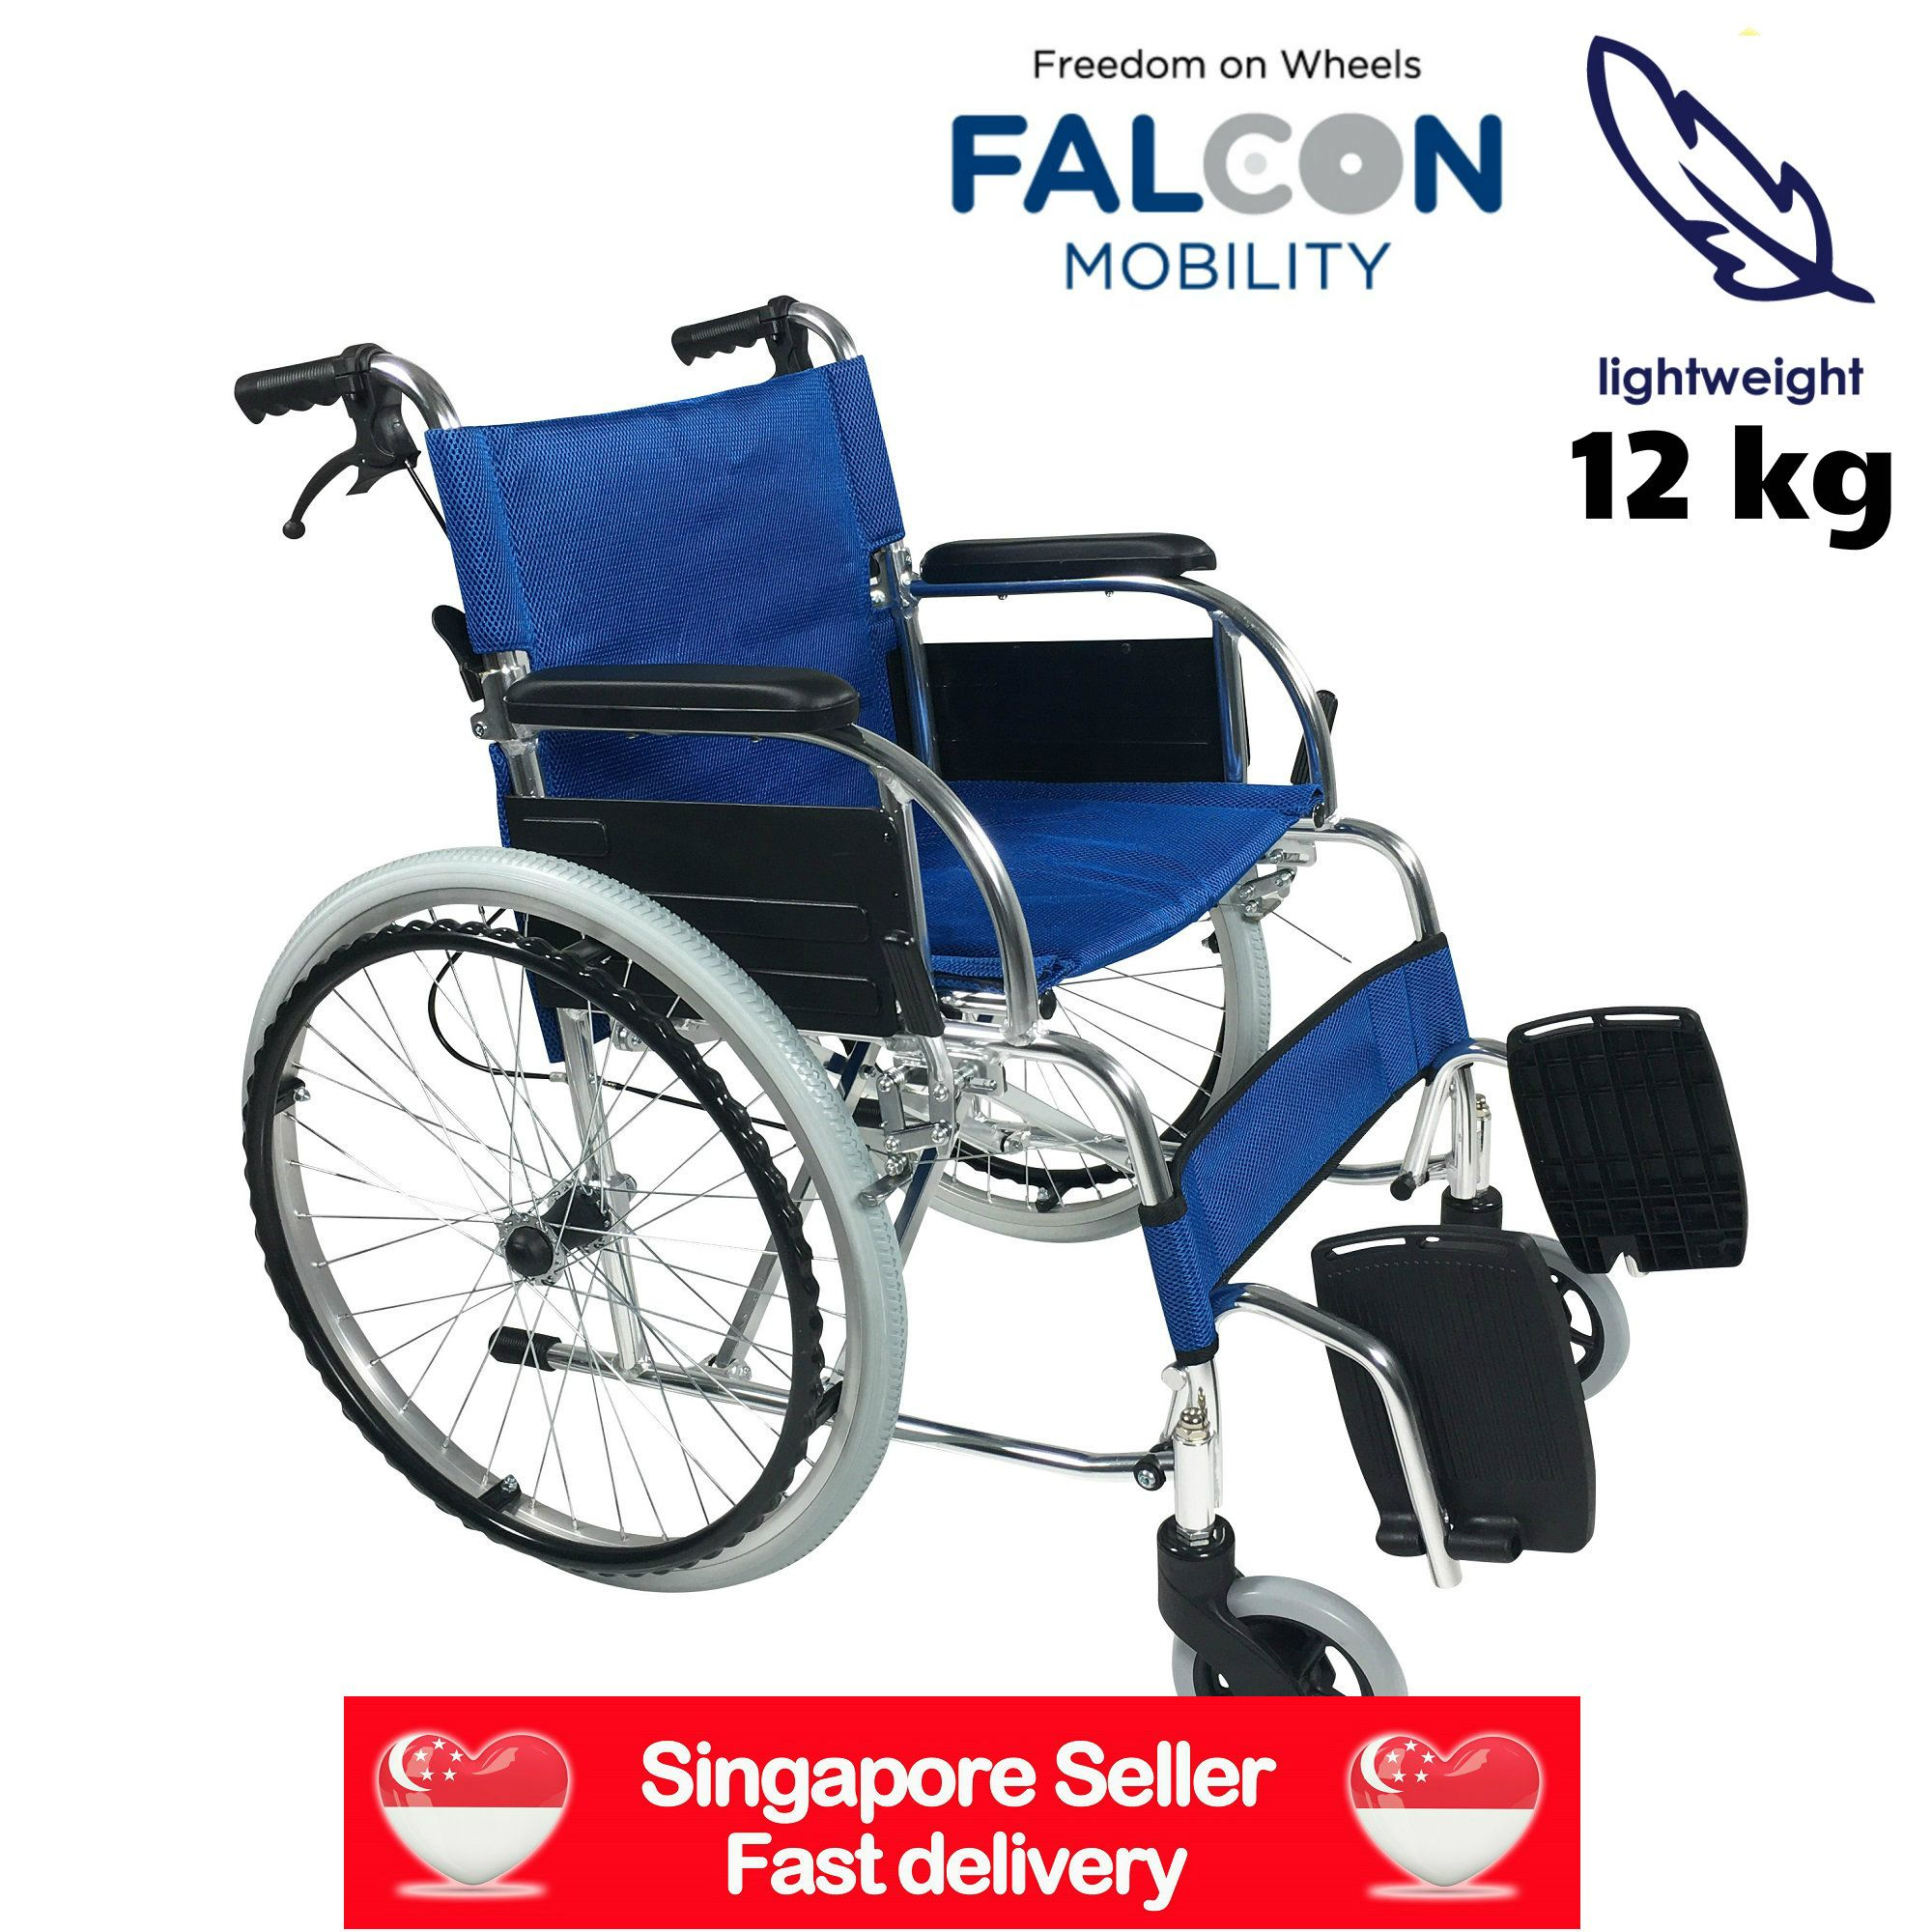 Finally, our Falcon Aluminium Wheelchair is back in stock